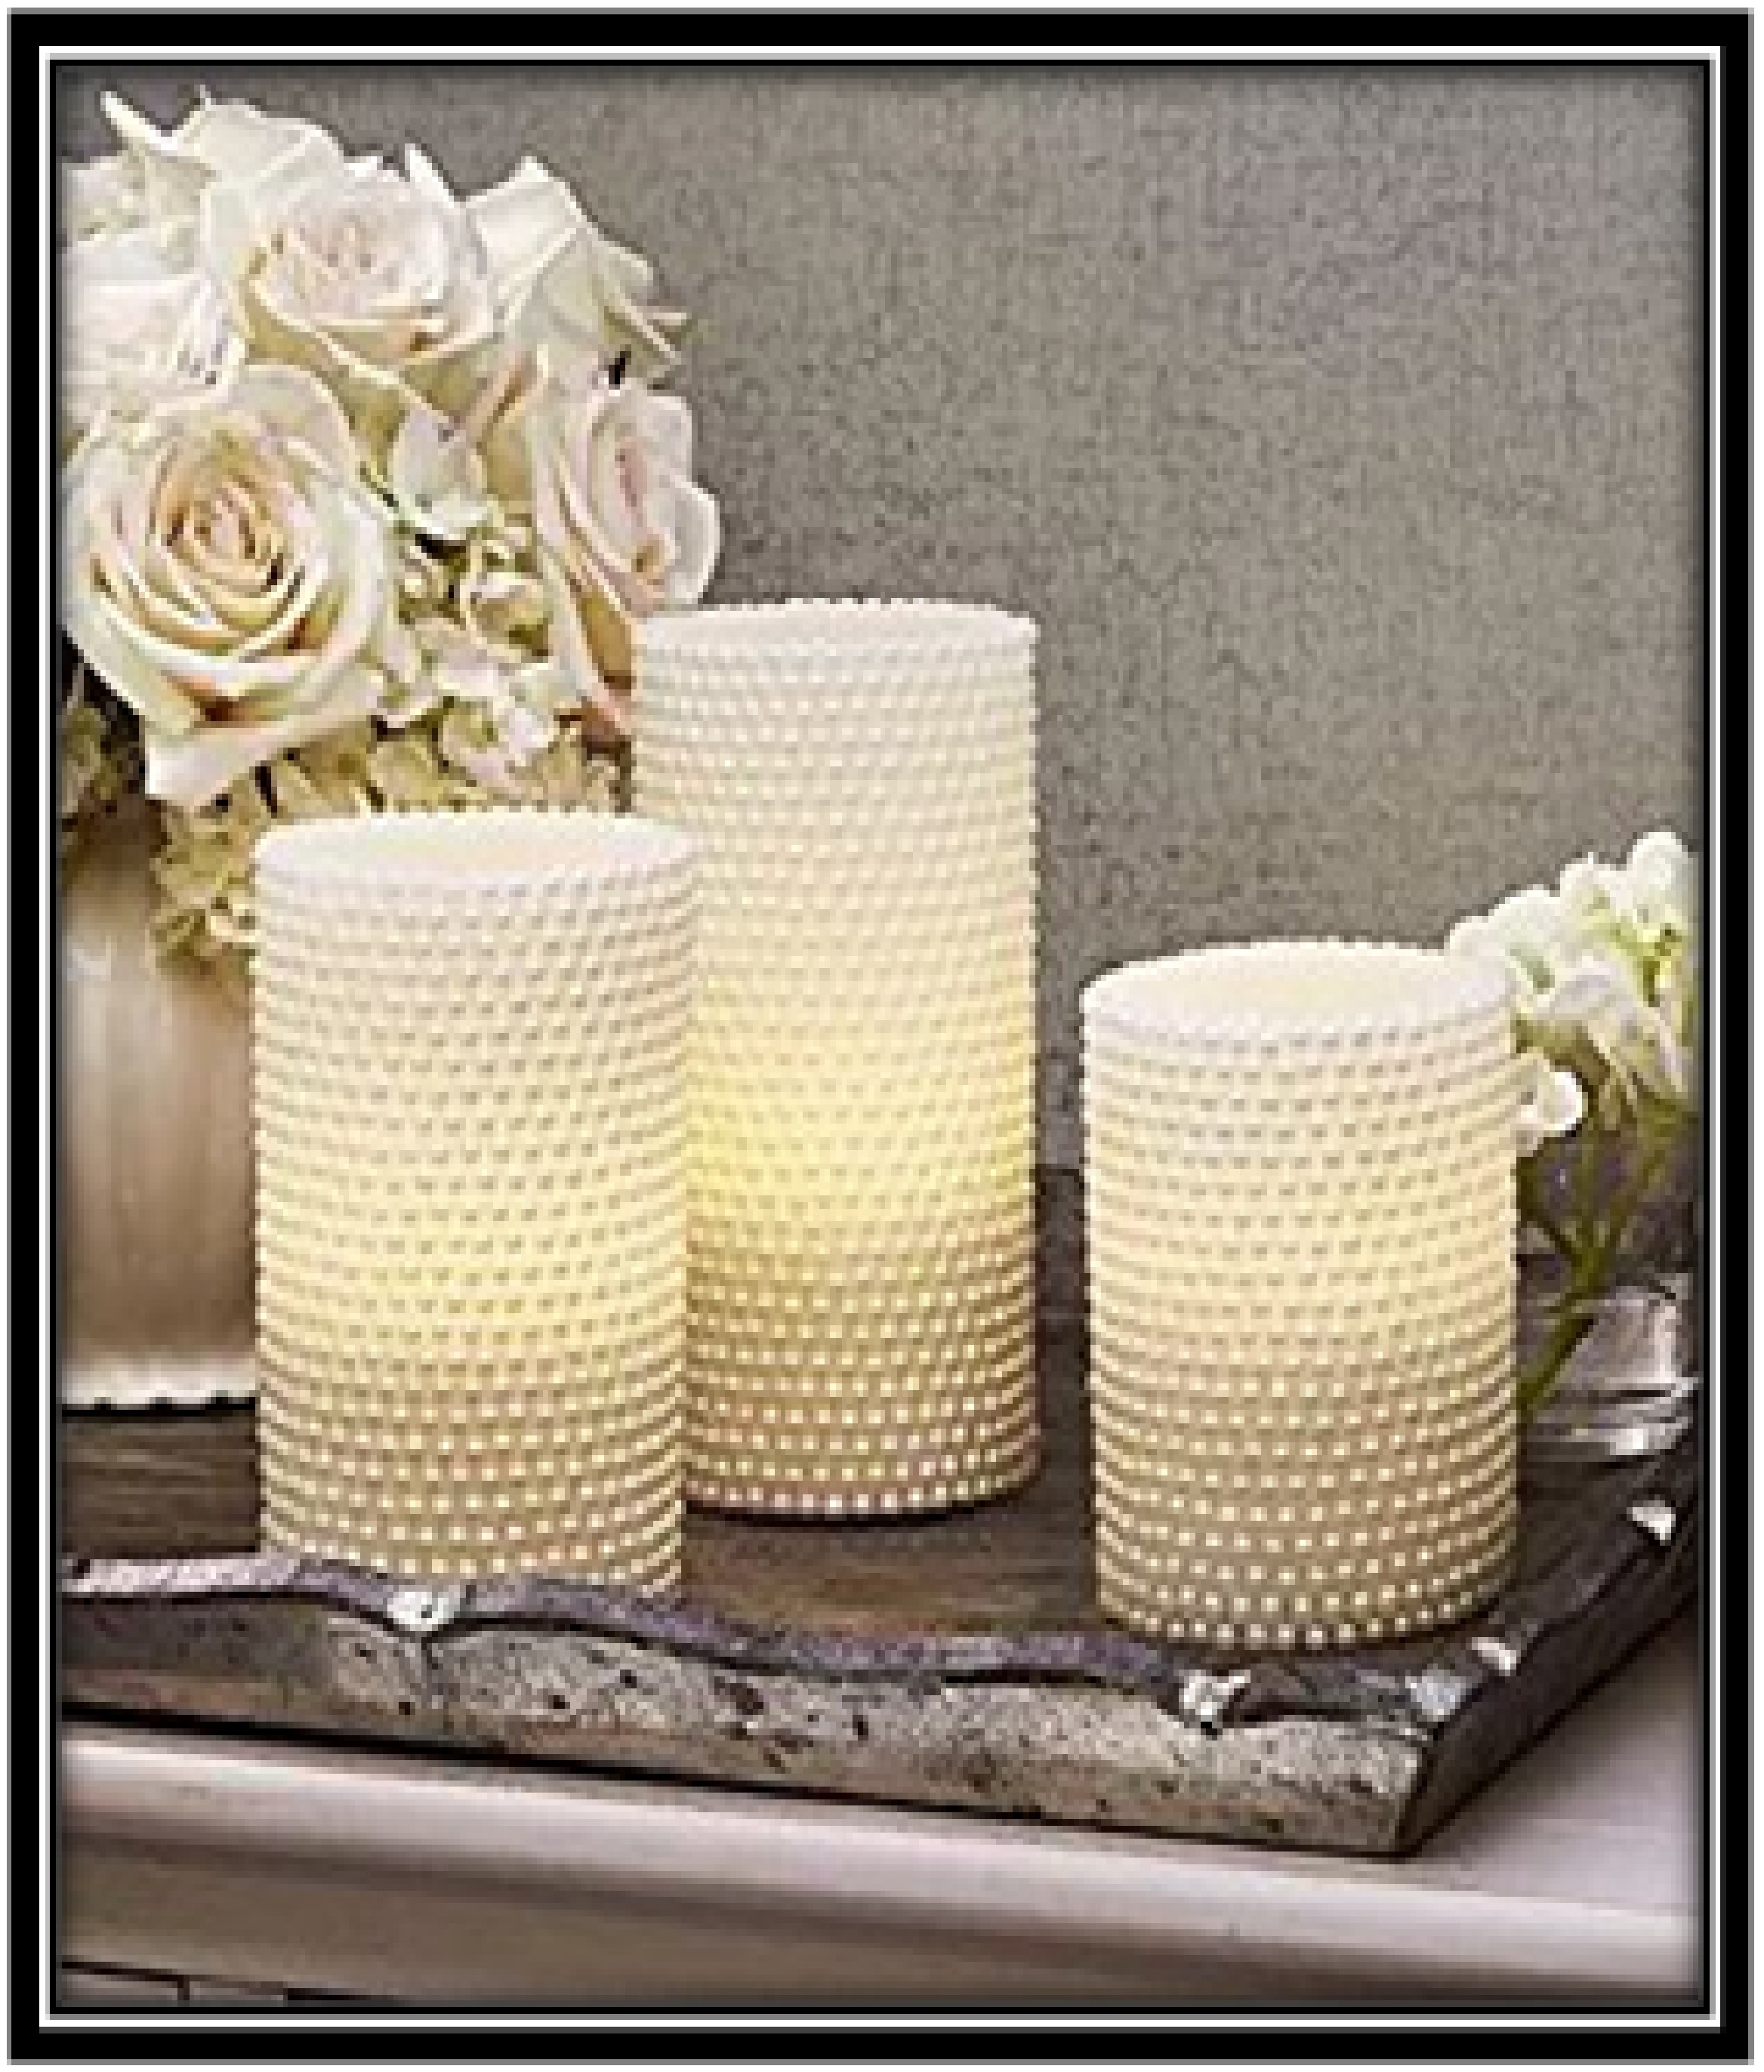 LED Candle for guest room - home decor ideas